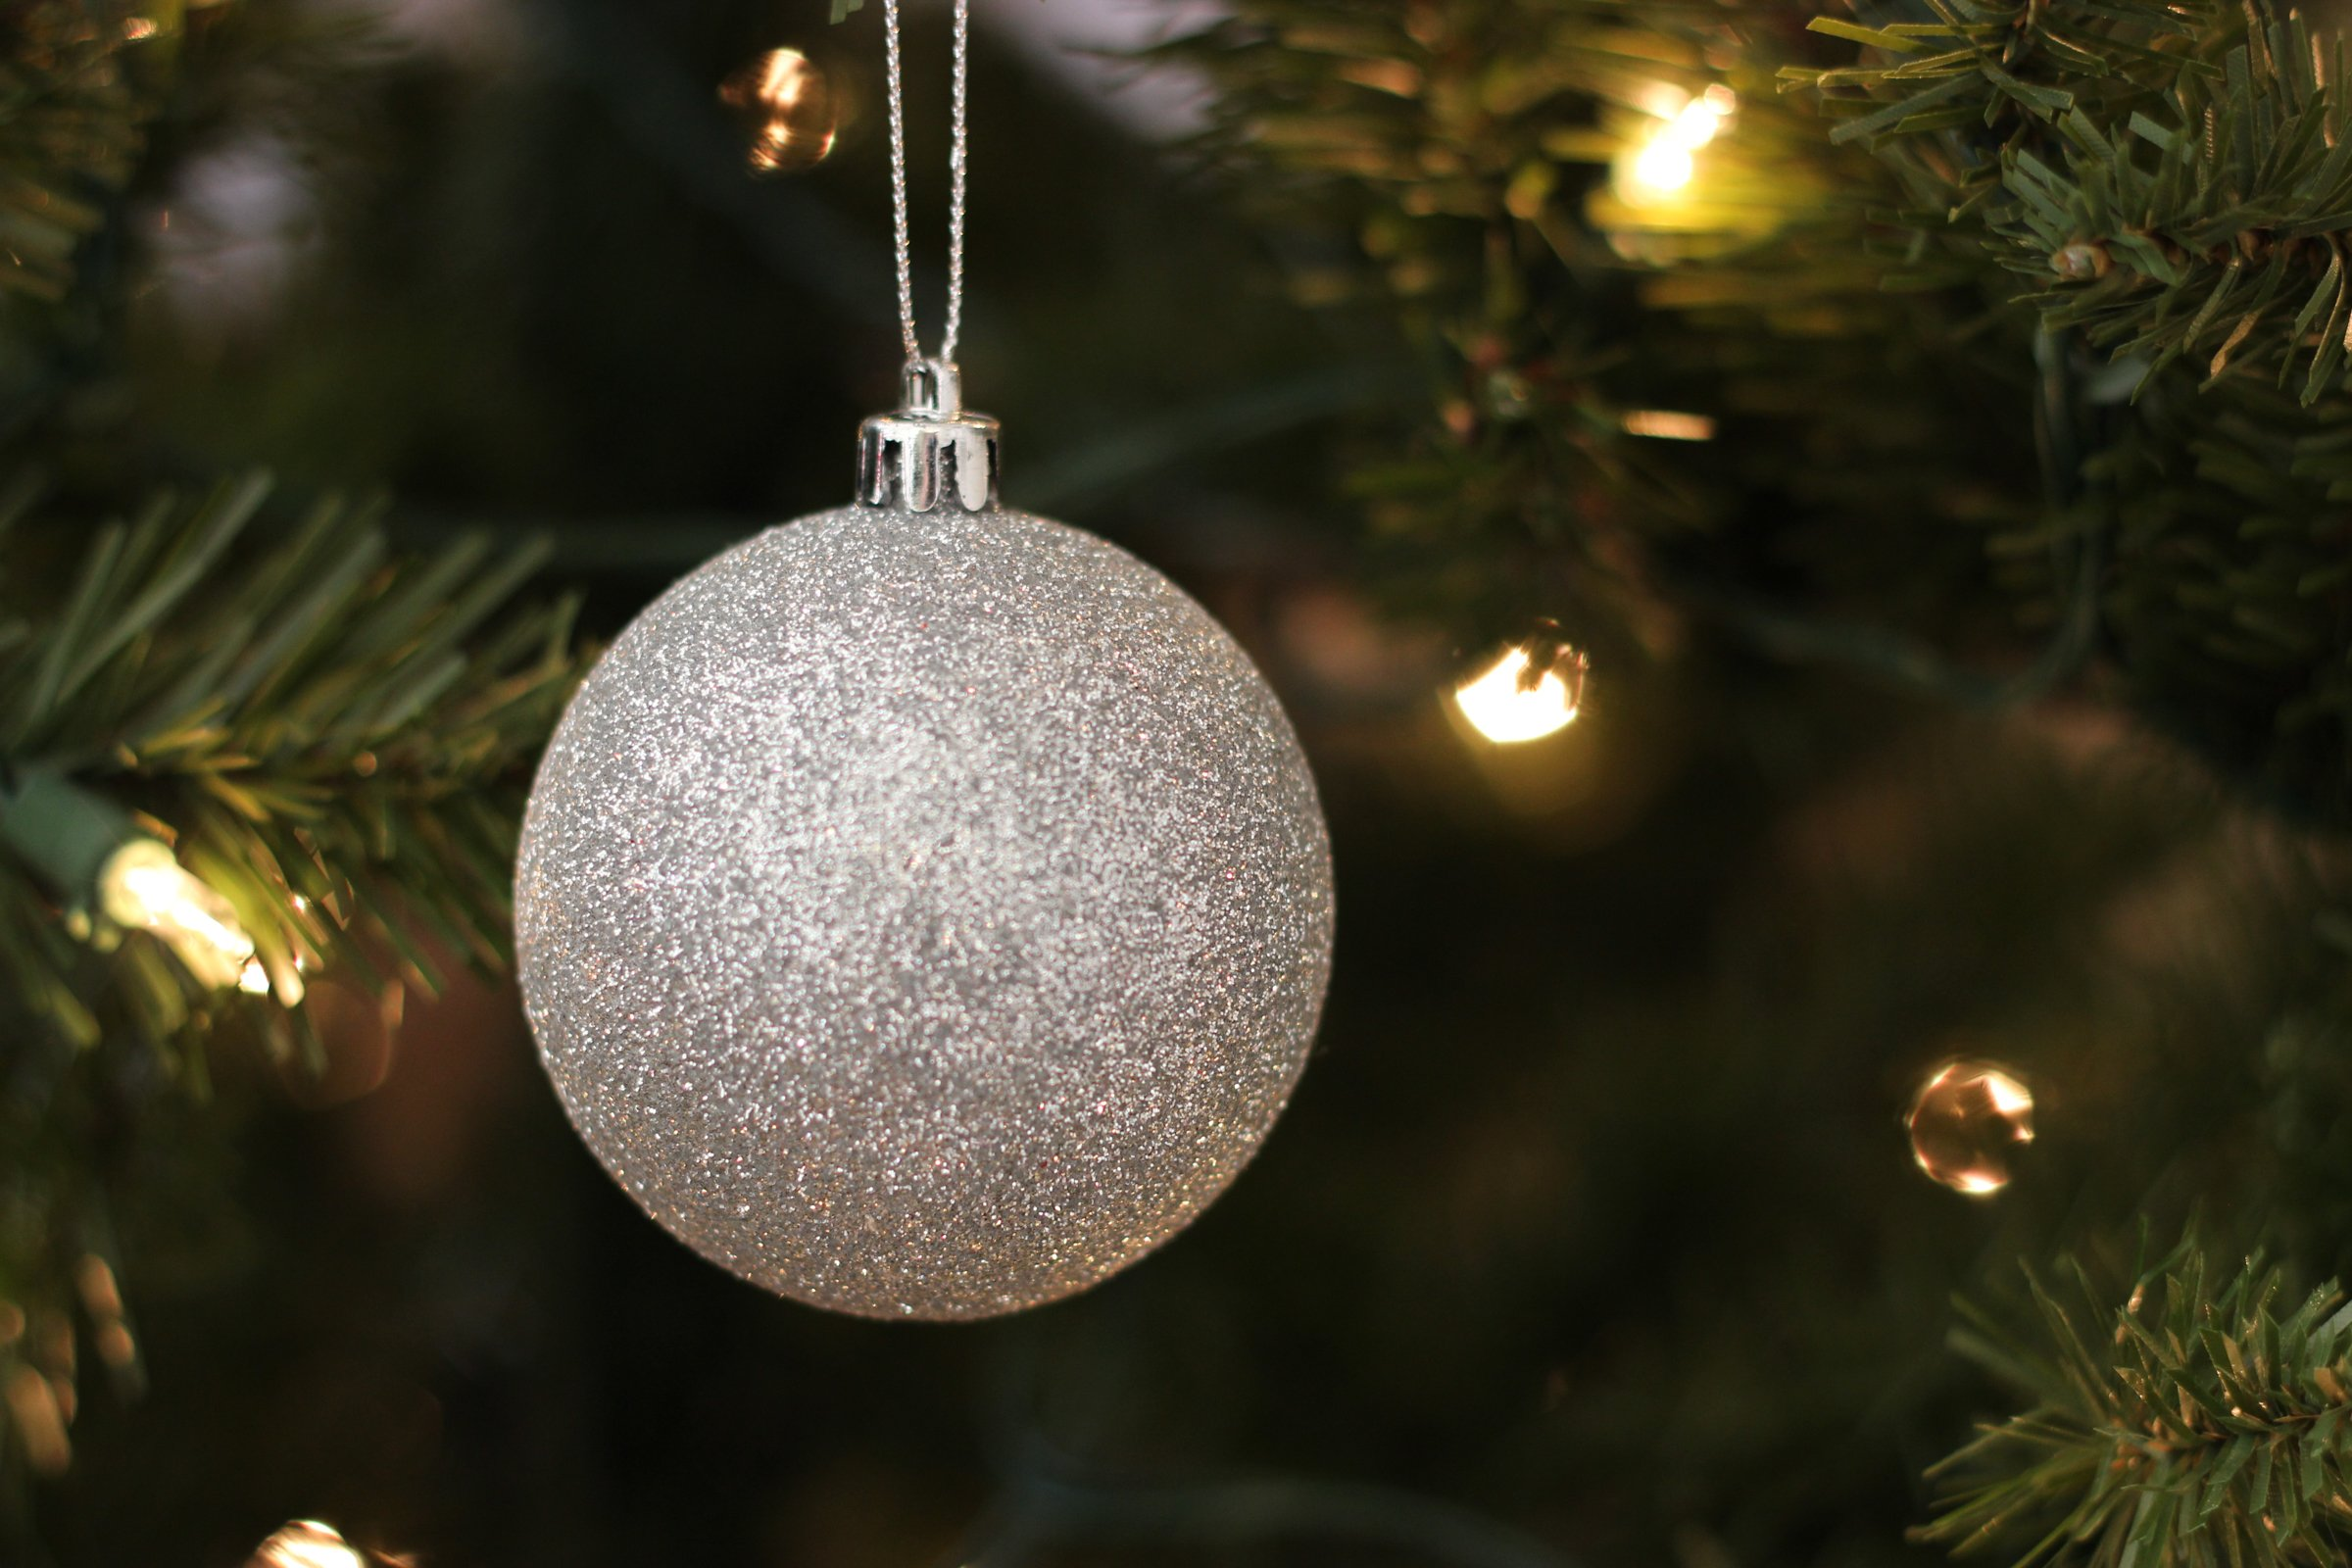 Free stock photo of silver ball ornament on christmas tree